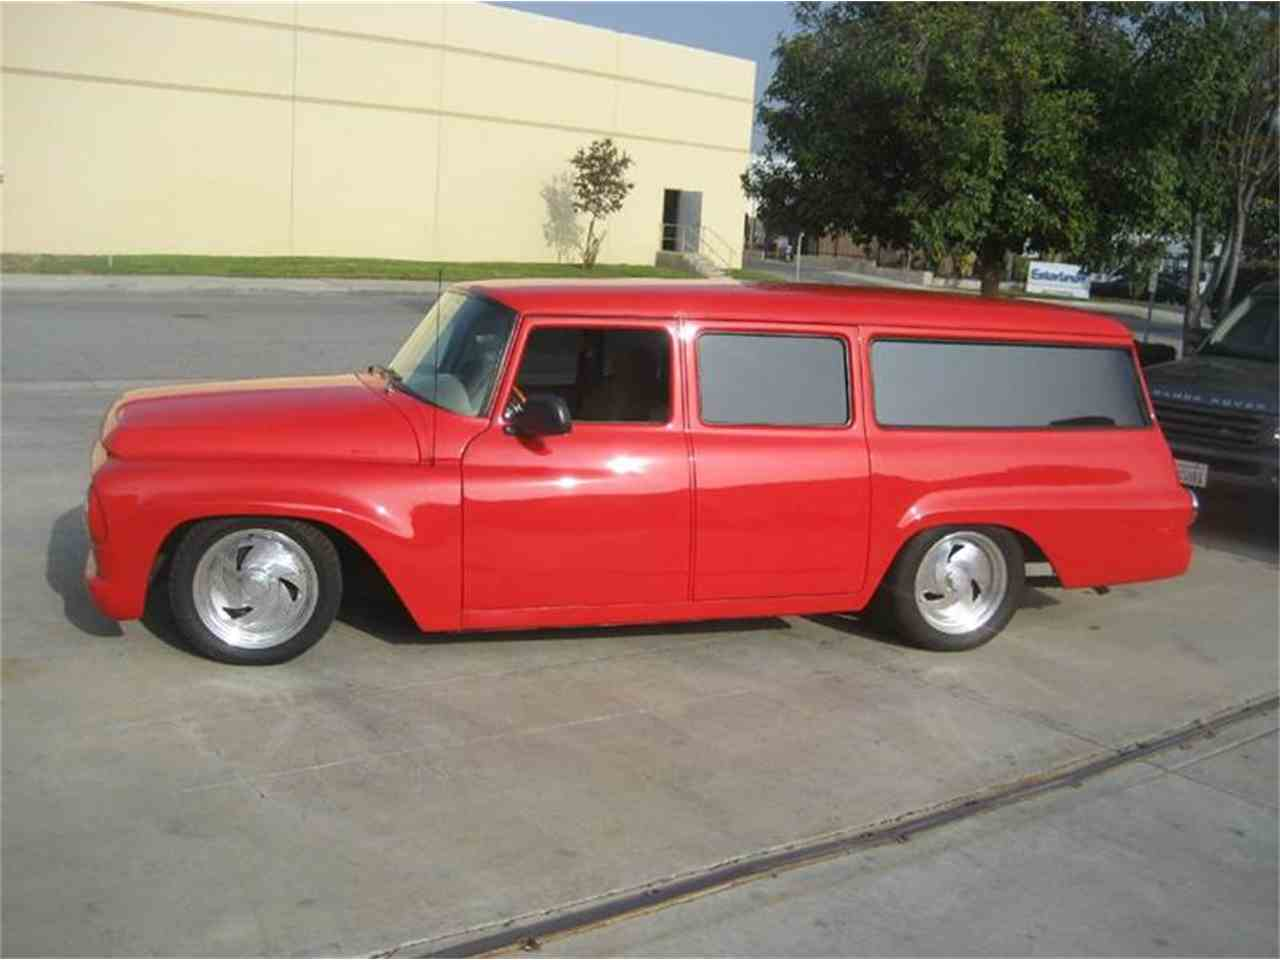 Large Picture of Classic '64 International Harvester Travelall located in Brea California - $25,000.00 - JOB9